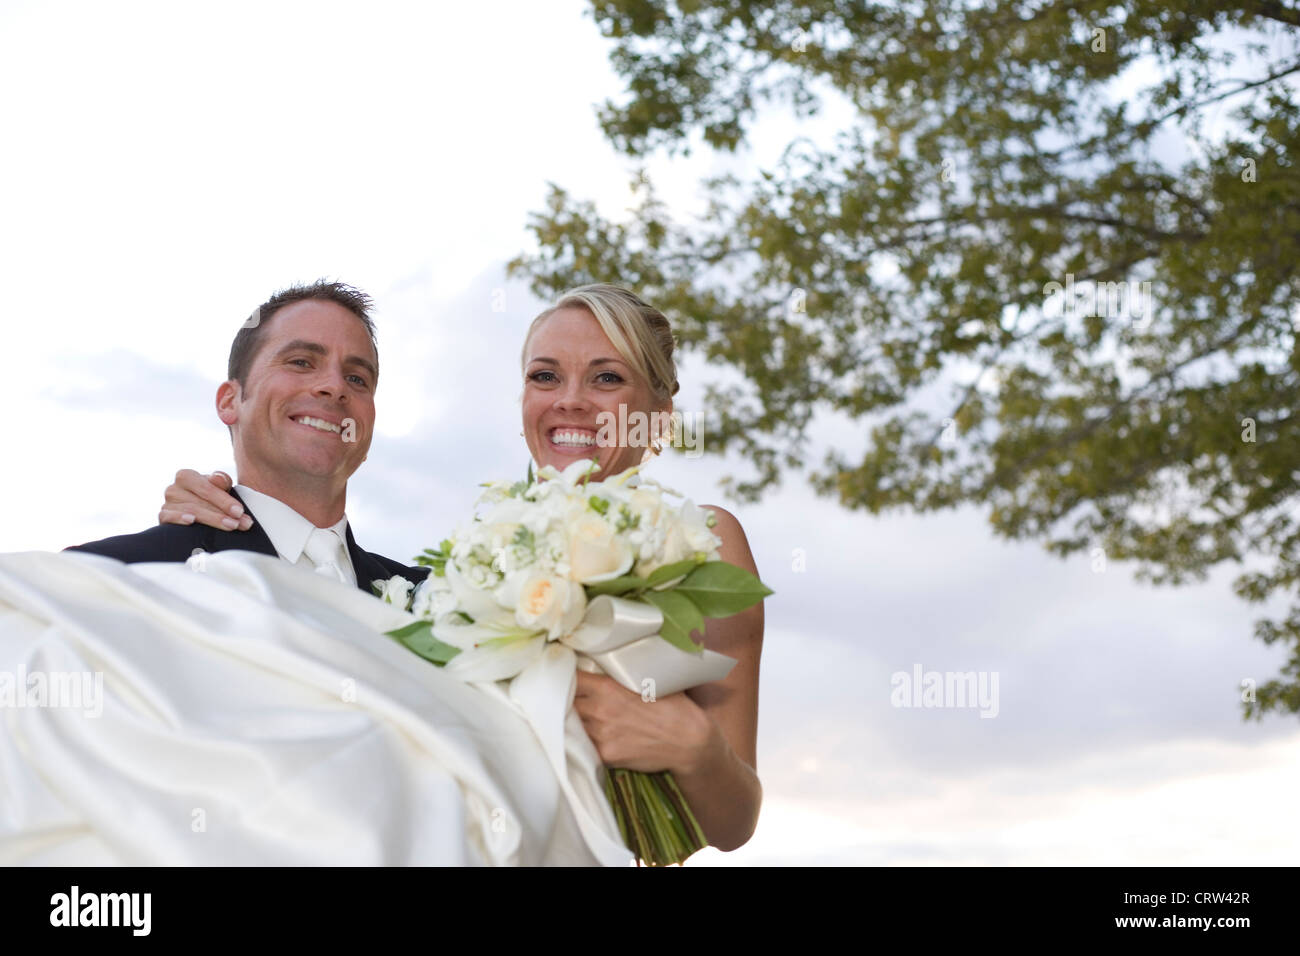 Groom holds bride outdoors just after wedding ceremony. - Stock Image